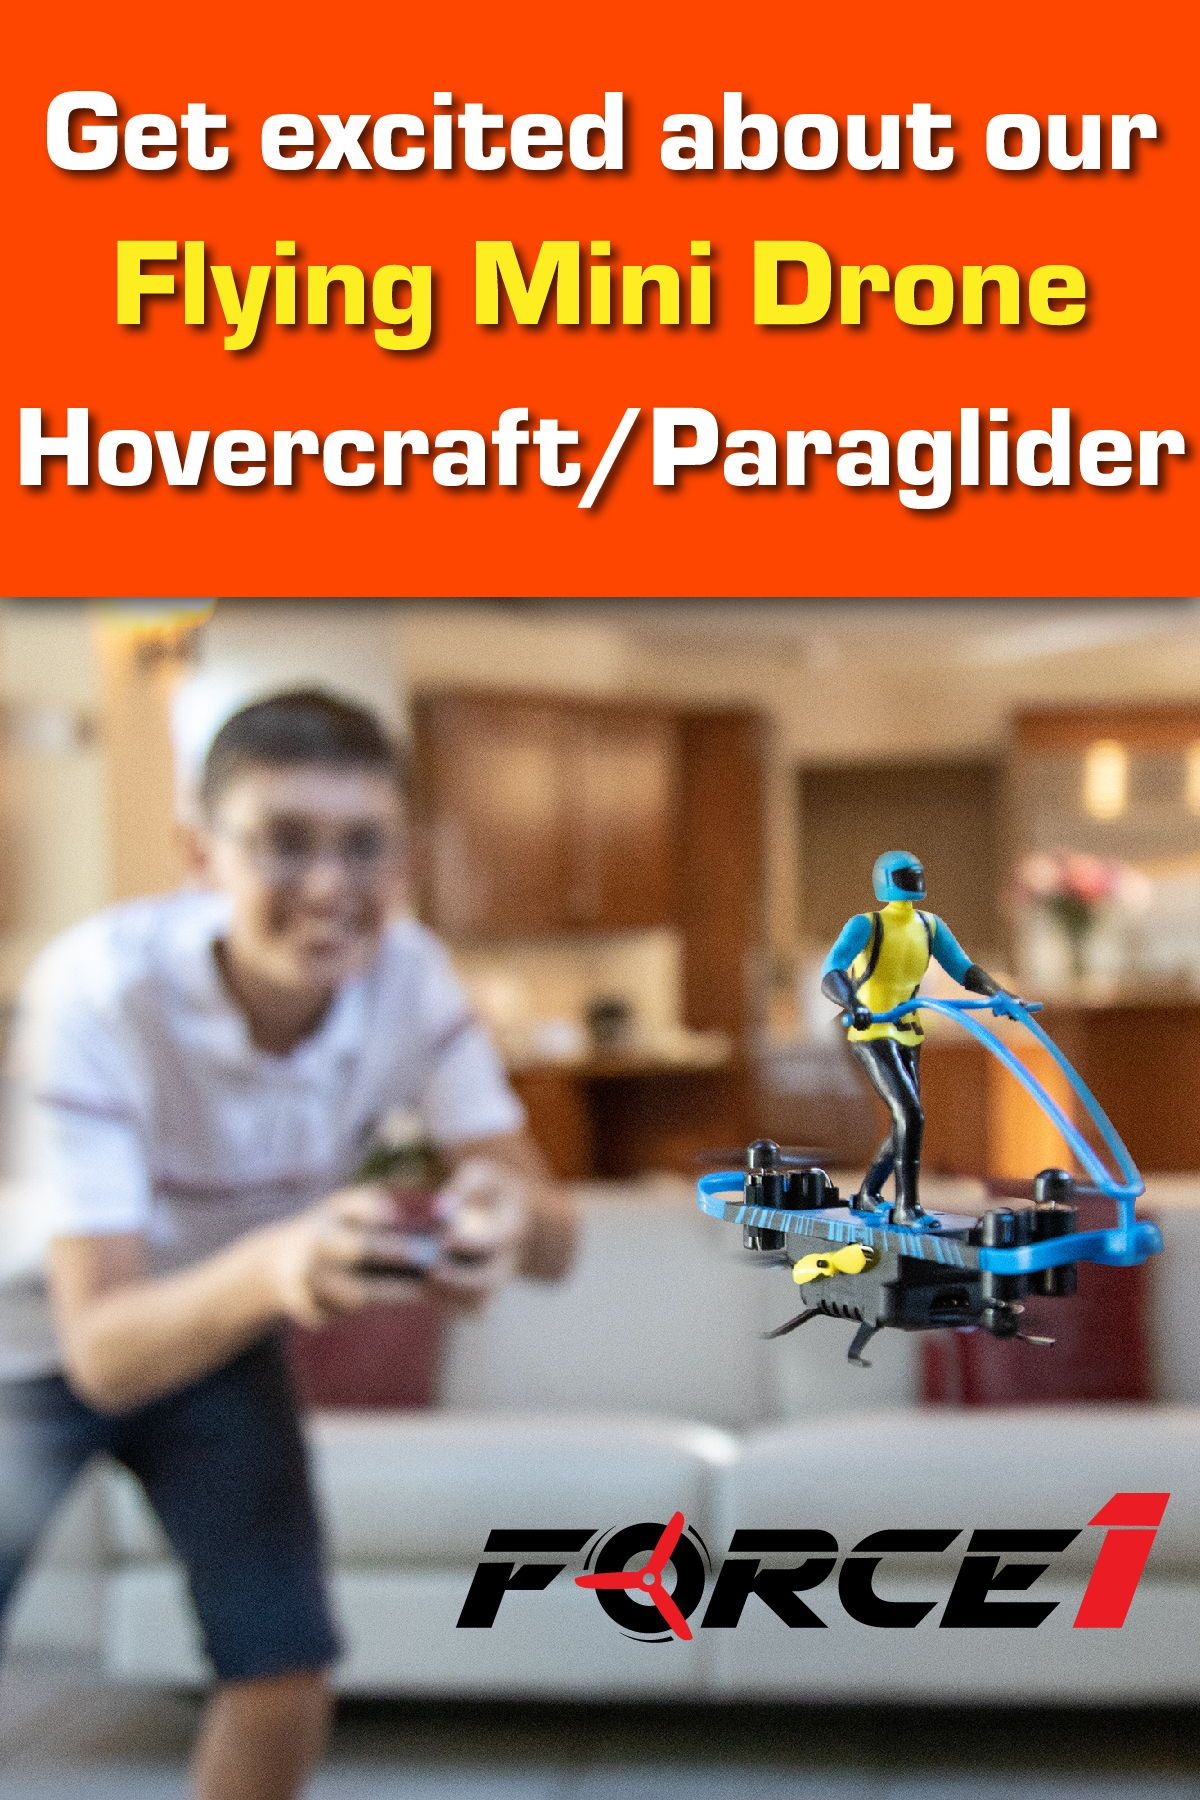 Hovercraft AND paraglider mini drone in one gives you that